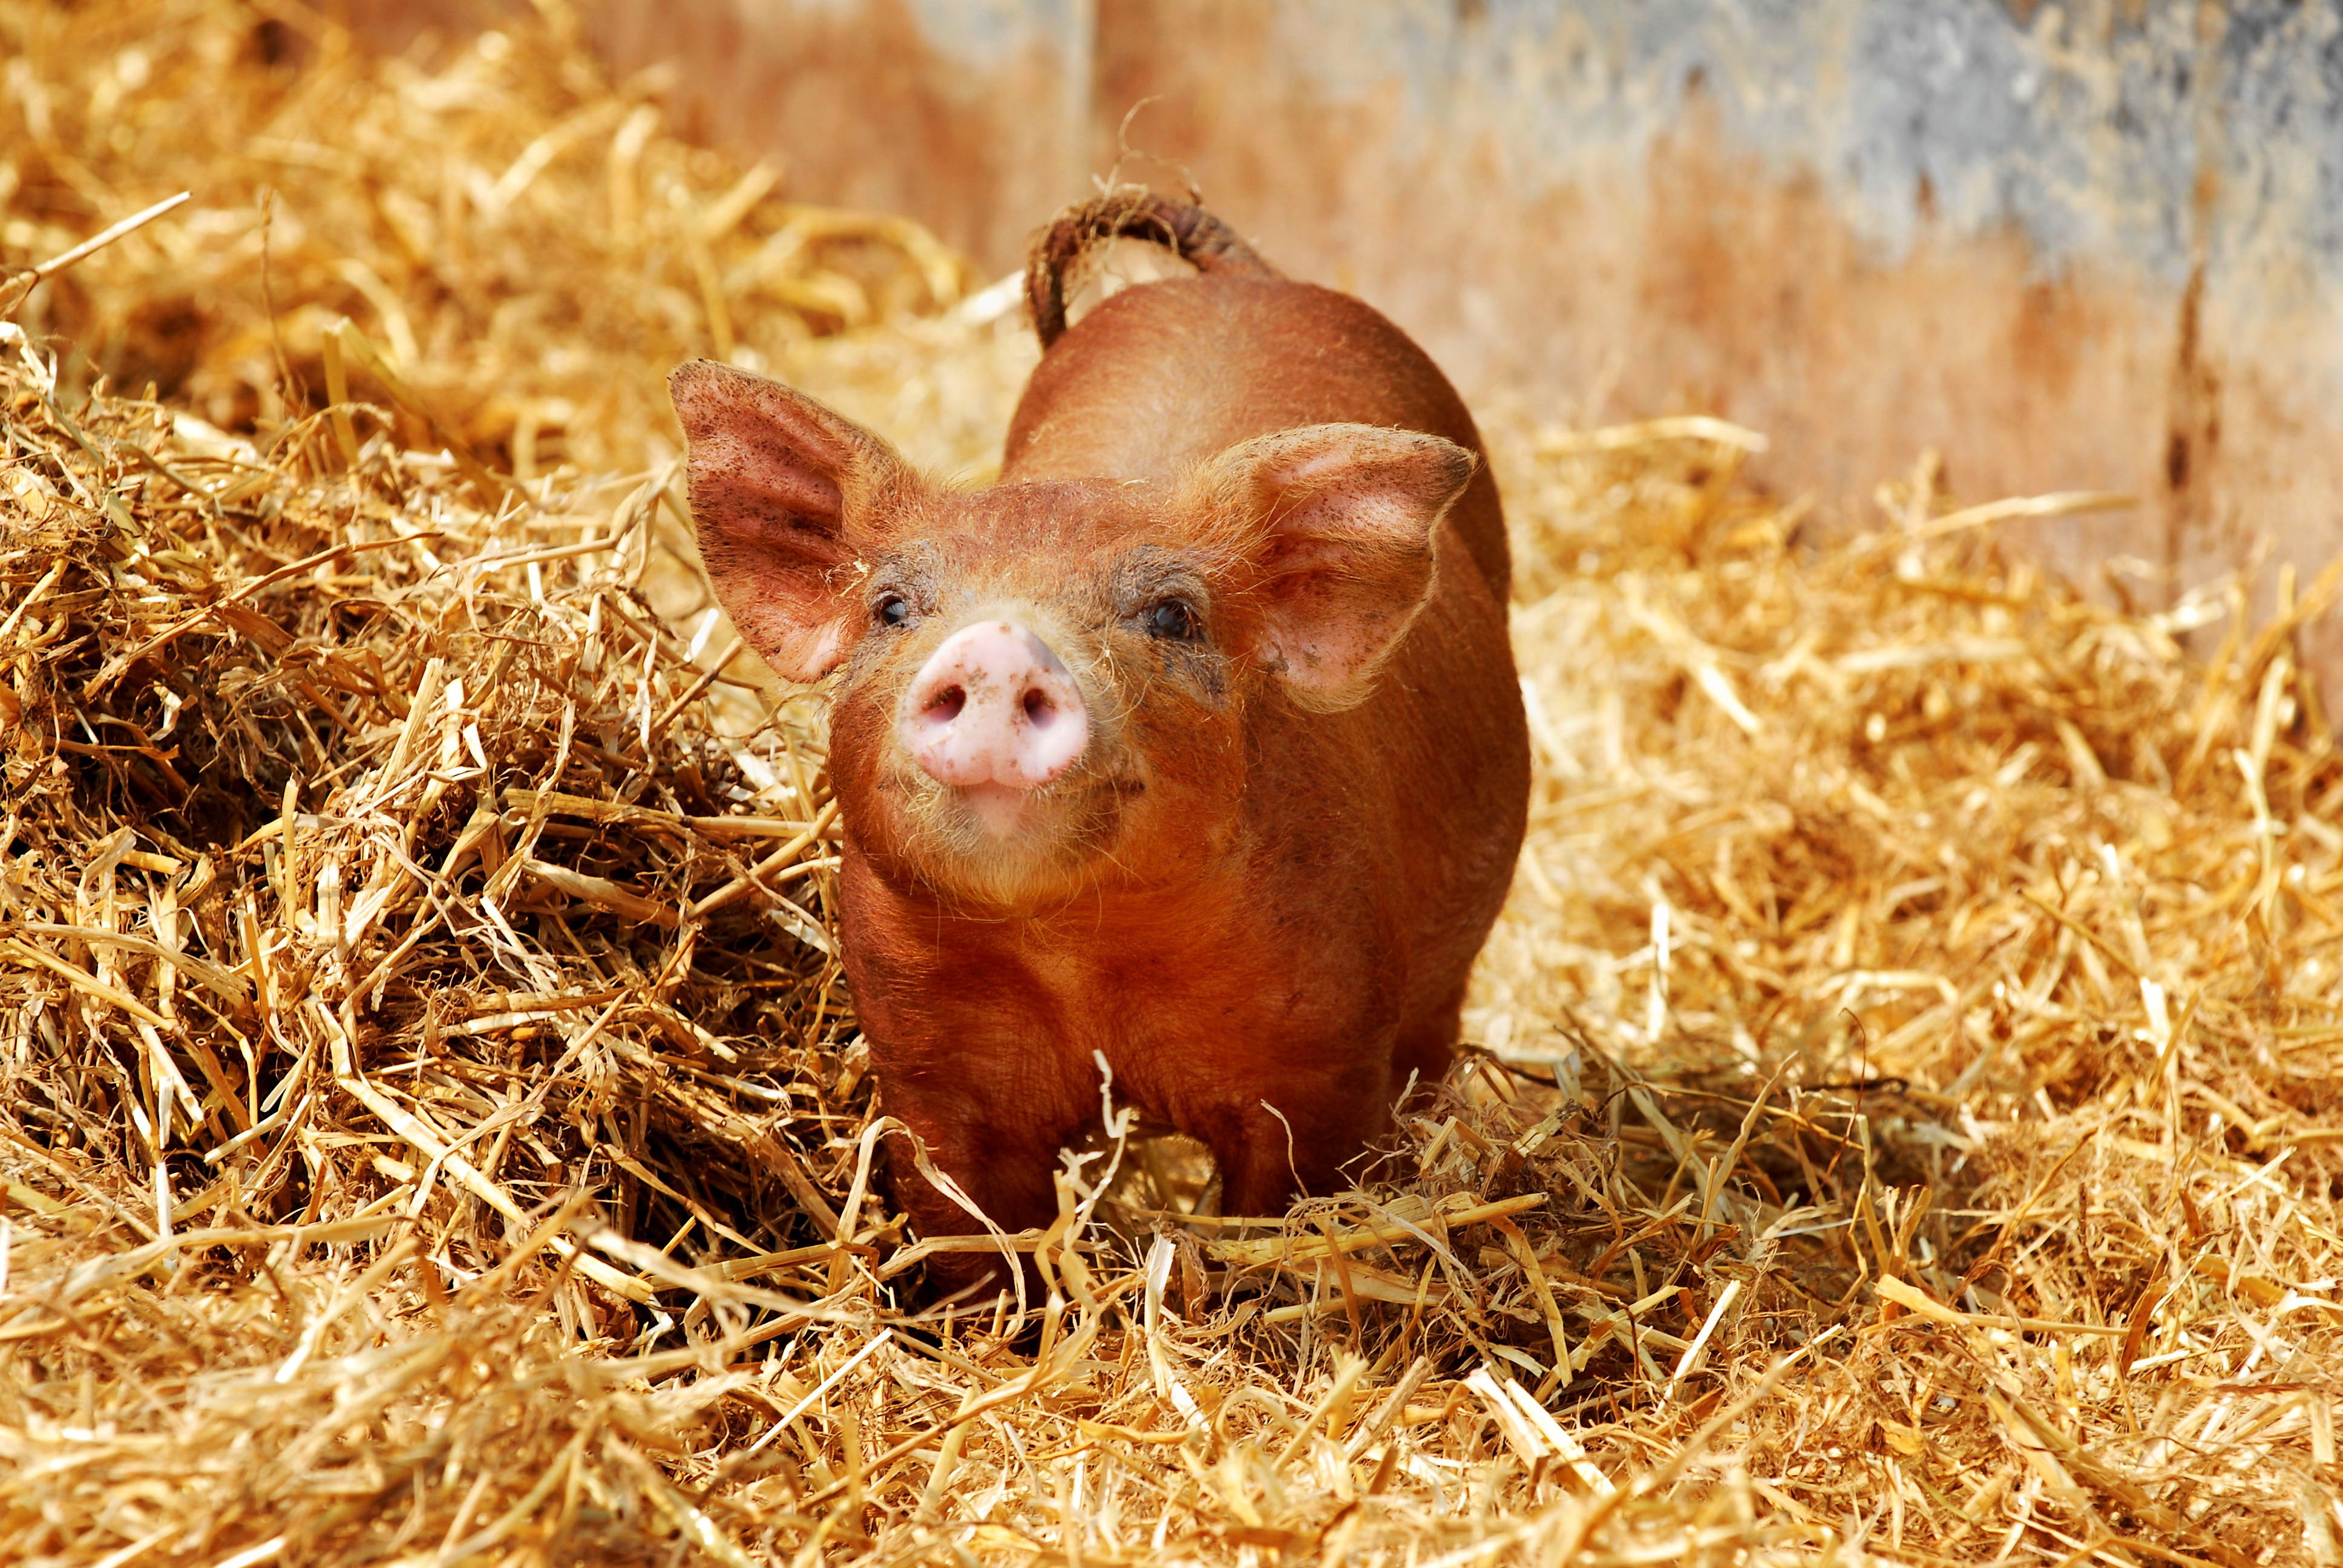 Cute piglet on golden straw